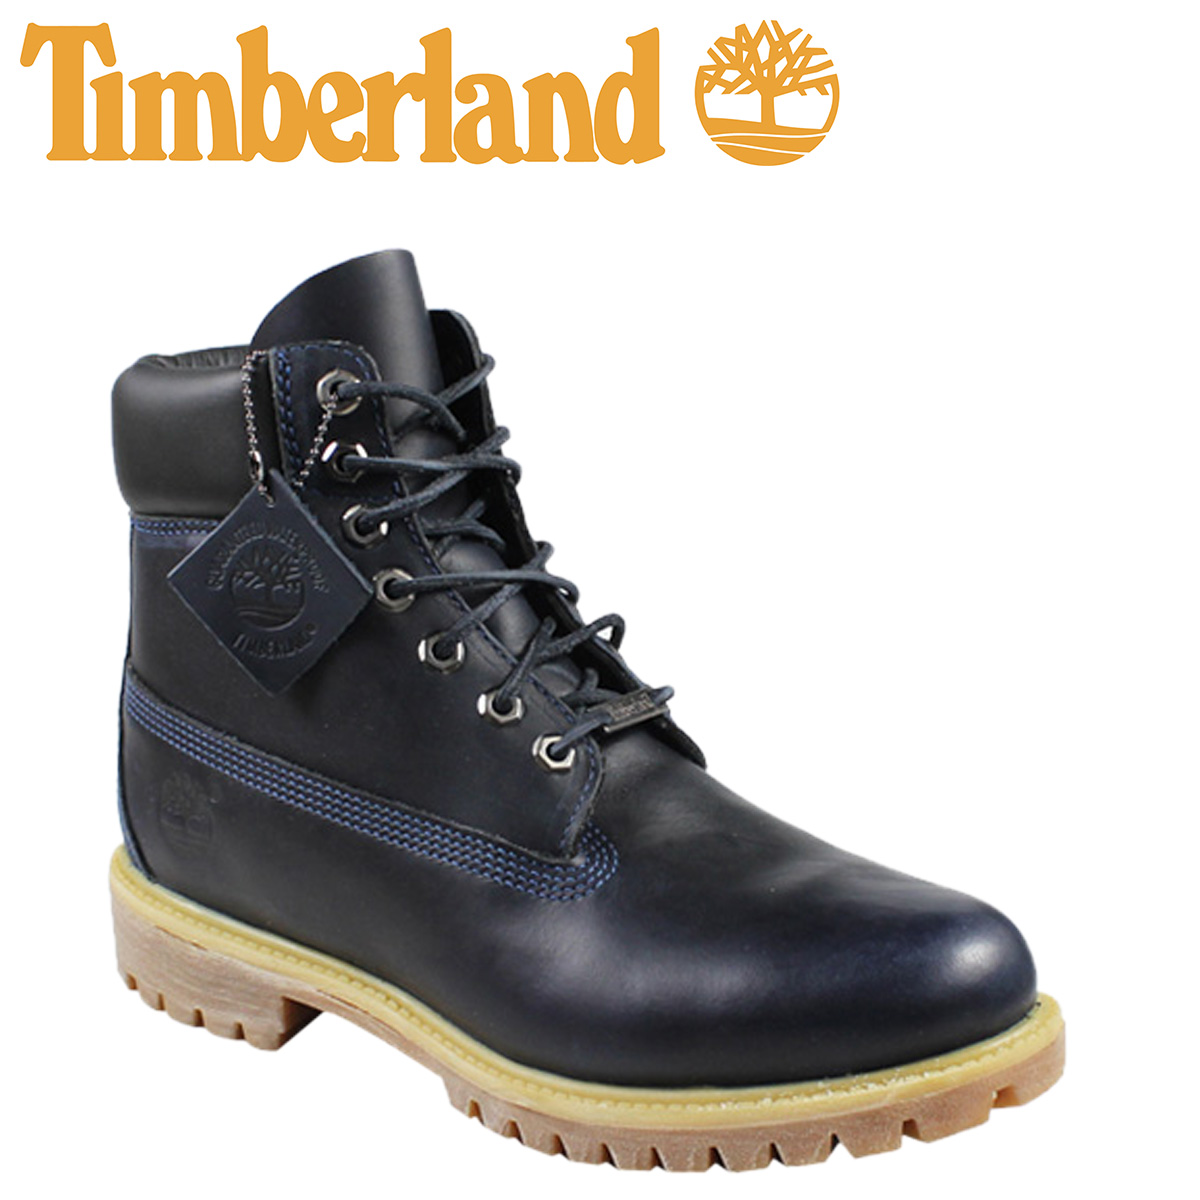 192dcde2a9a 6 inches of Timberland Timberland premium waterproof boots 6-INCH PREMIUM  WATERPROOF BOOTS nubuck 6,557A navy men